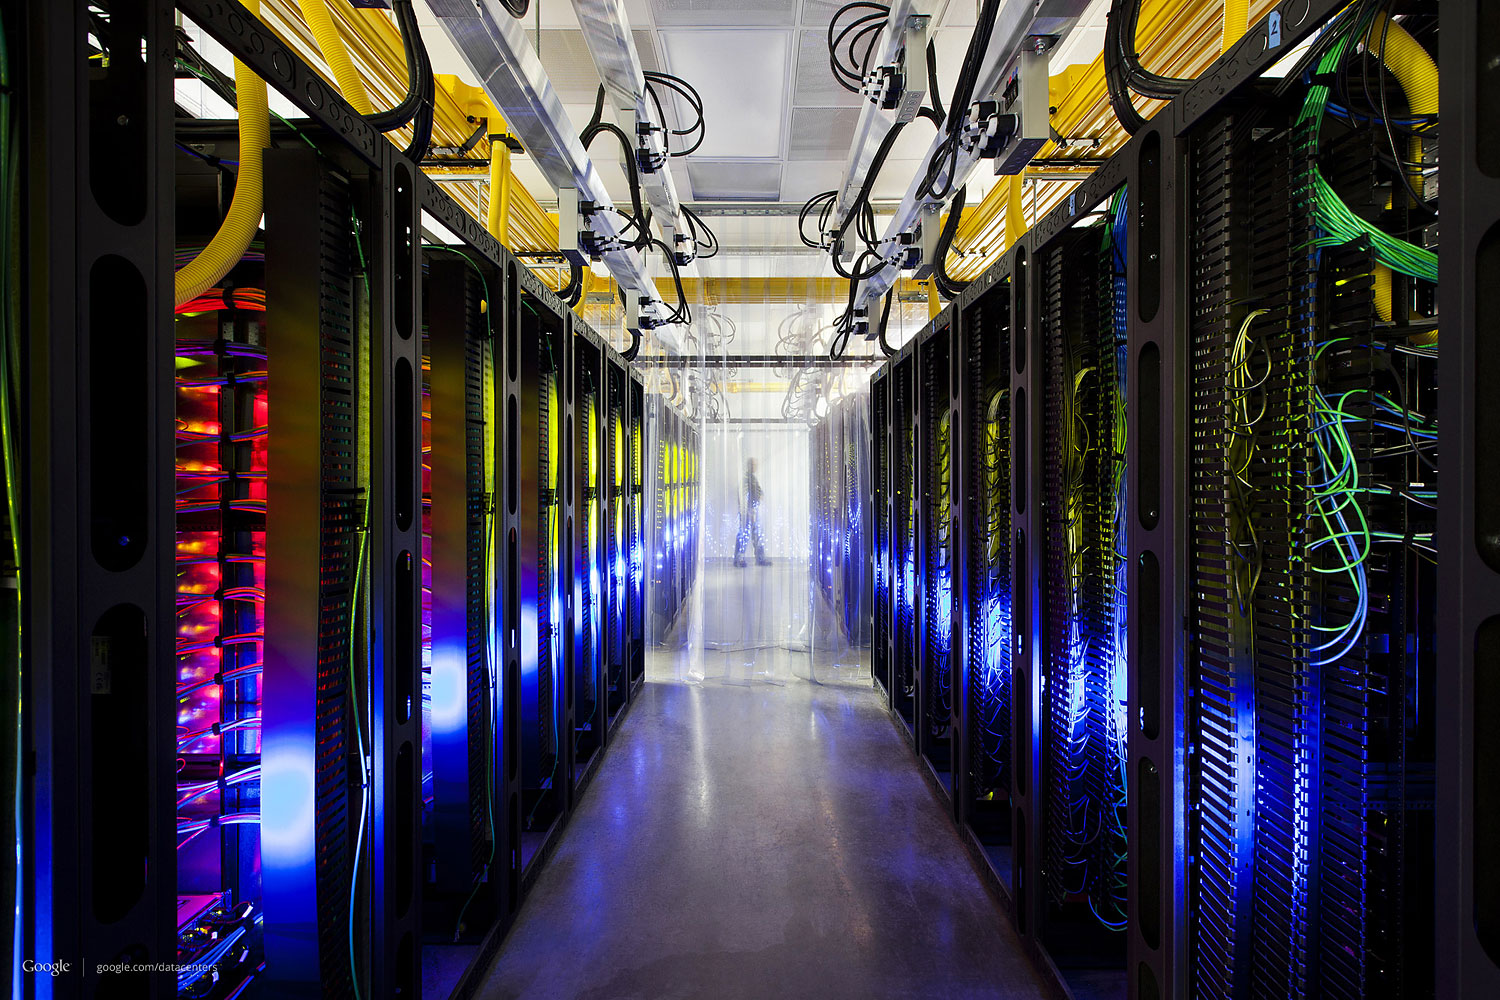 This undated photo made available by Google shows a campus-network room at a data center in Council Bluffs, Iowa.